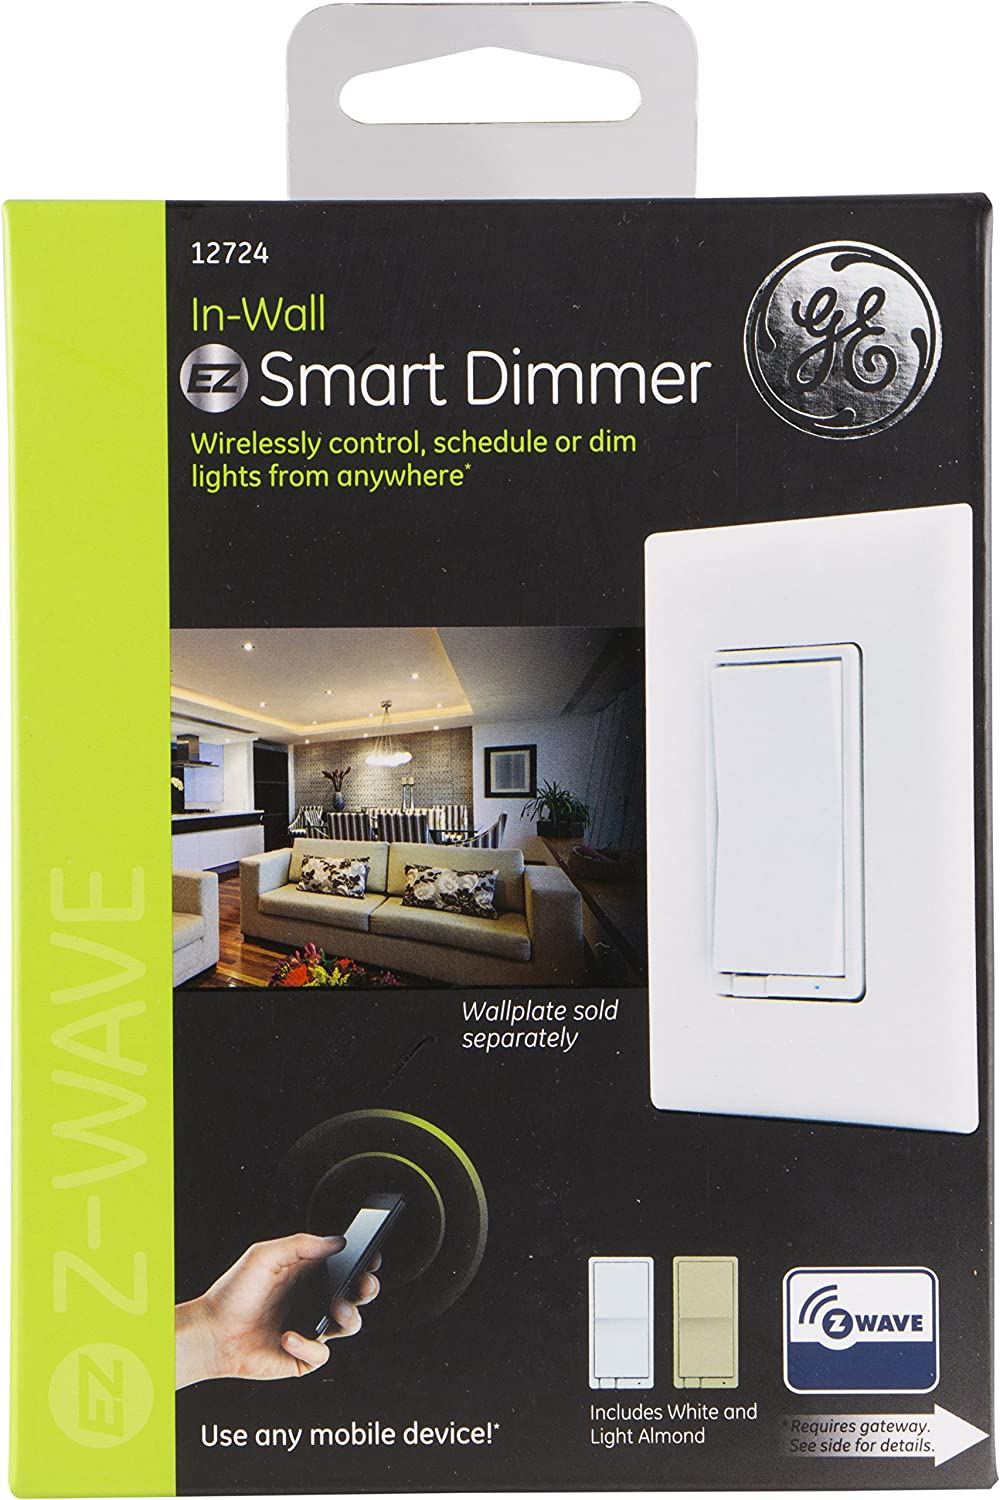 Ge Z Wave Wireless Smart Lighting Control Dimmer In Wall 3 Way Switch Cfl Includes White Light Almond Paddles 12724 Works With Alexa Switches